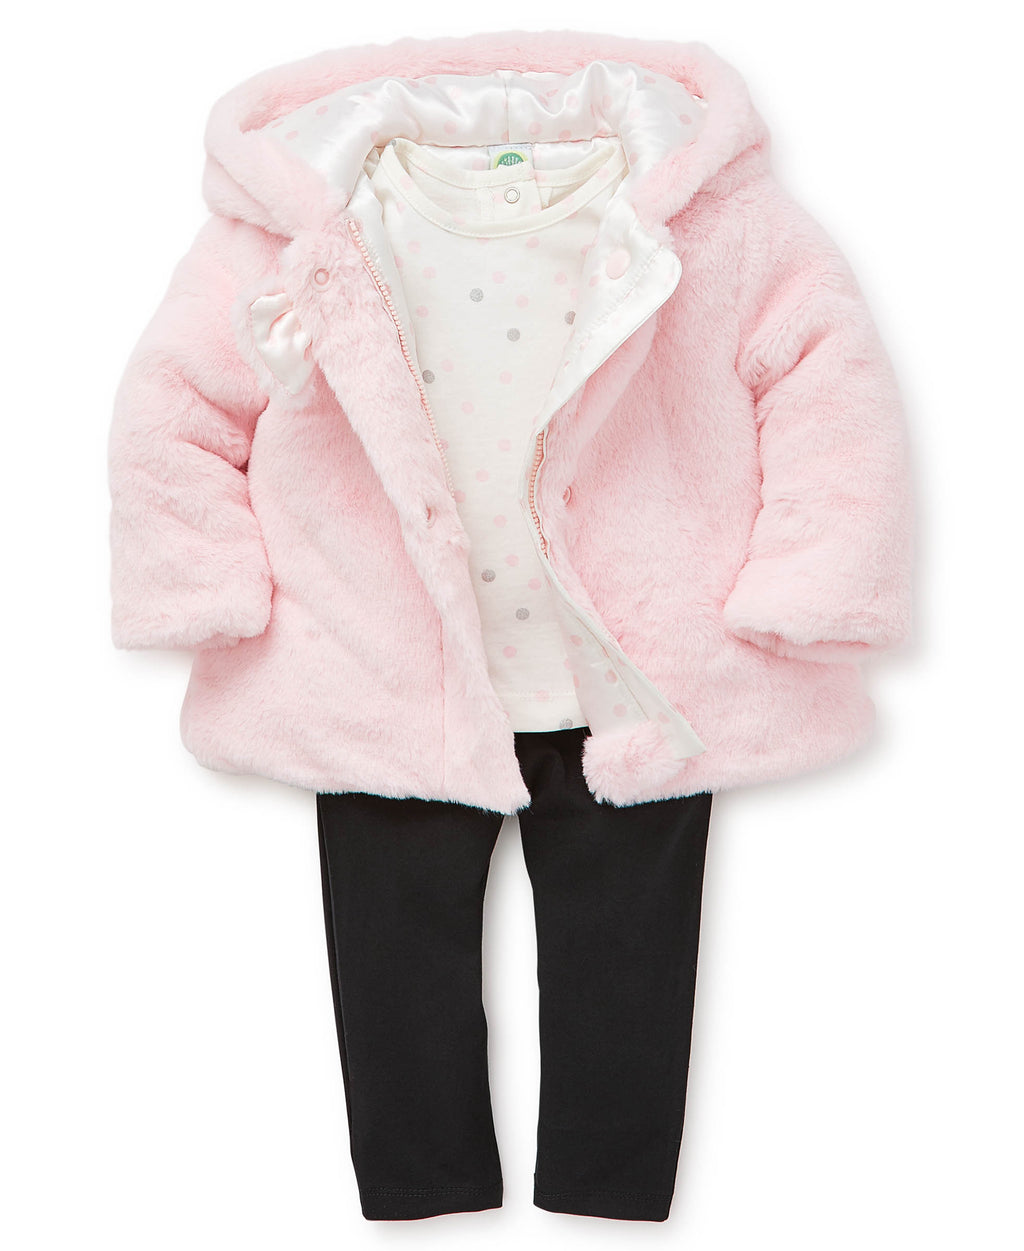 Pink Fur Toddler Jacket Set